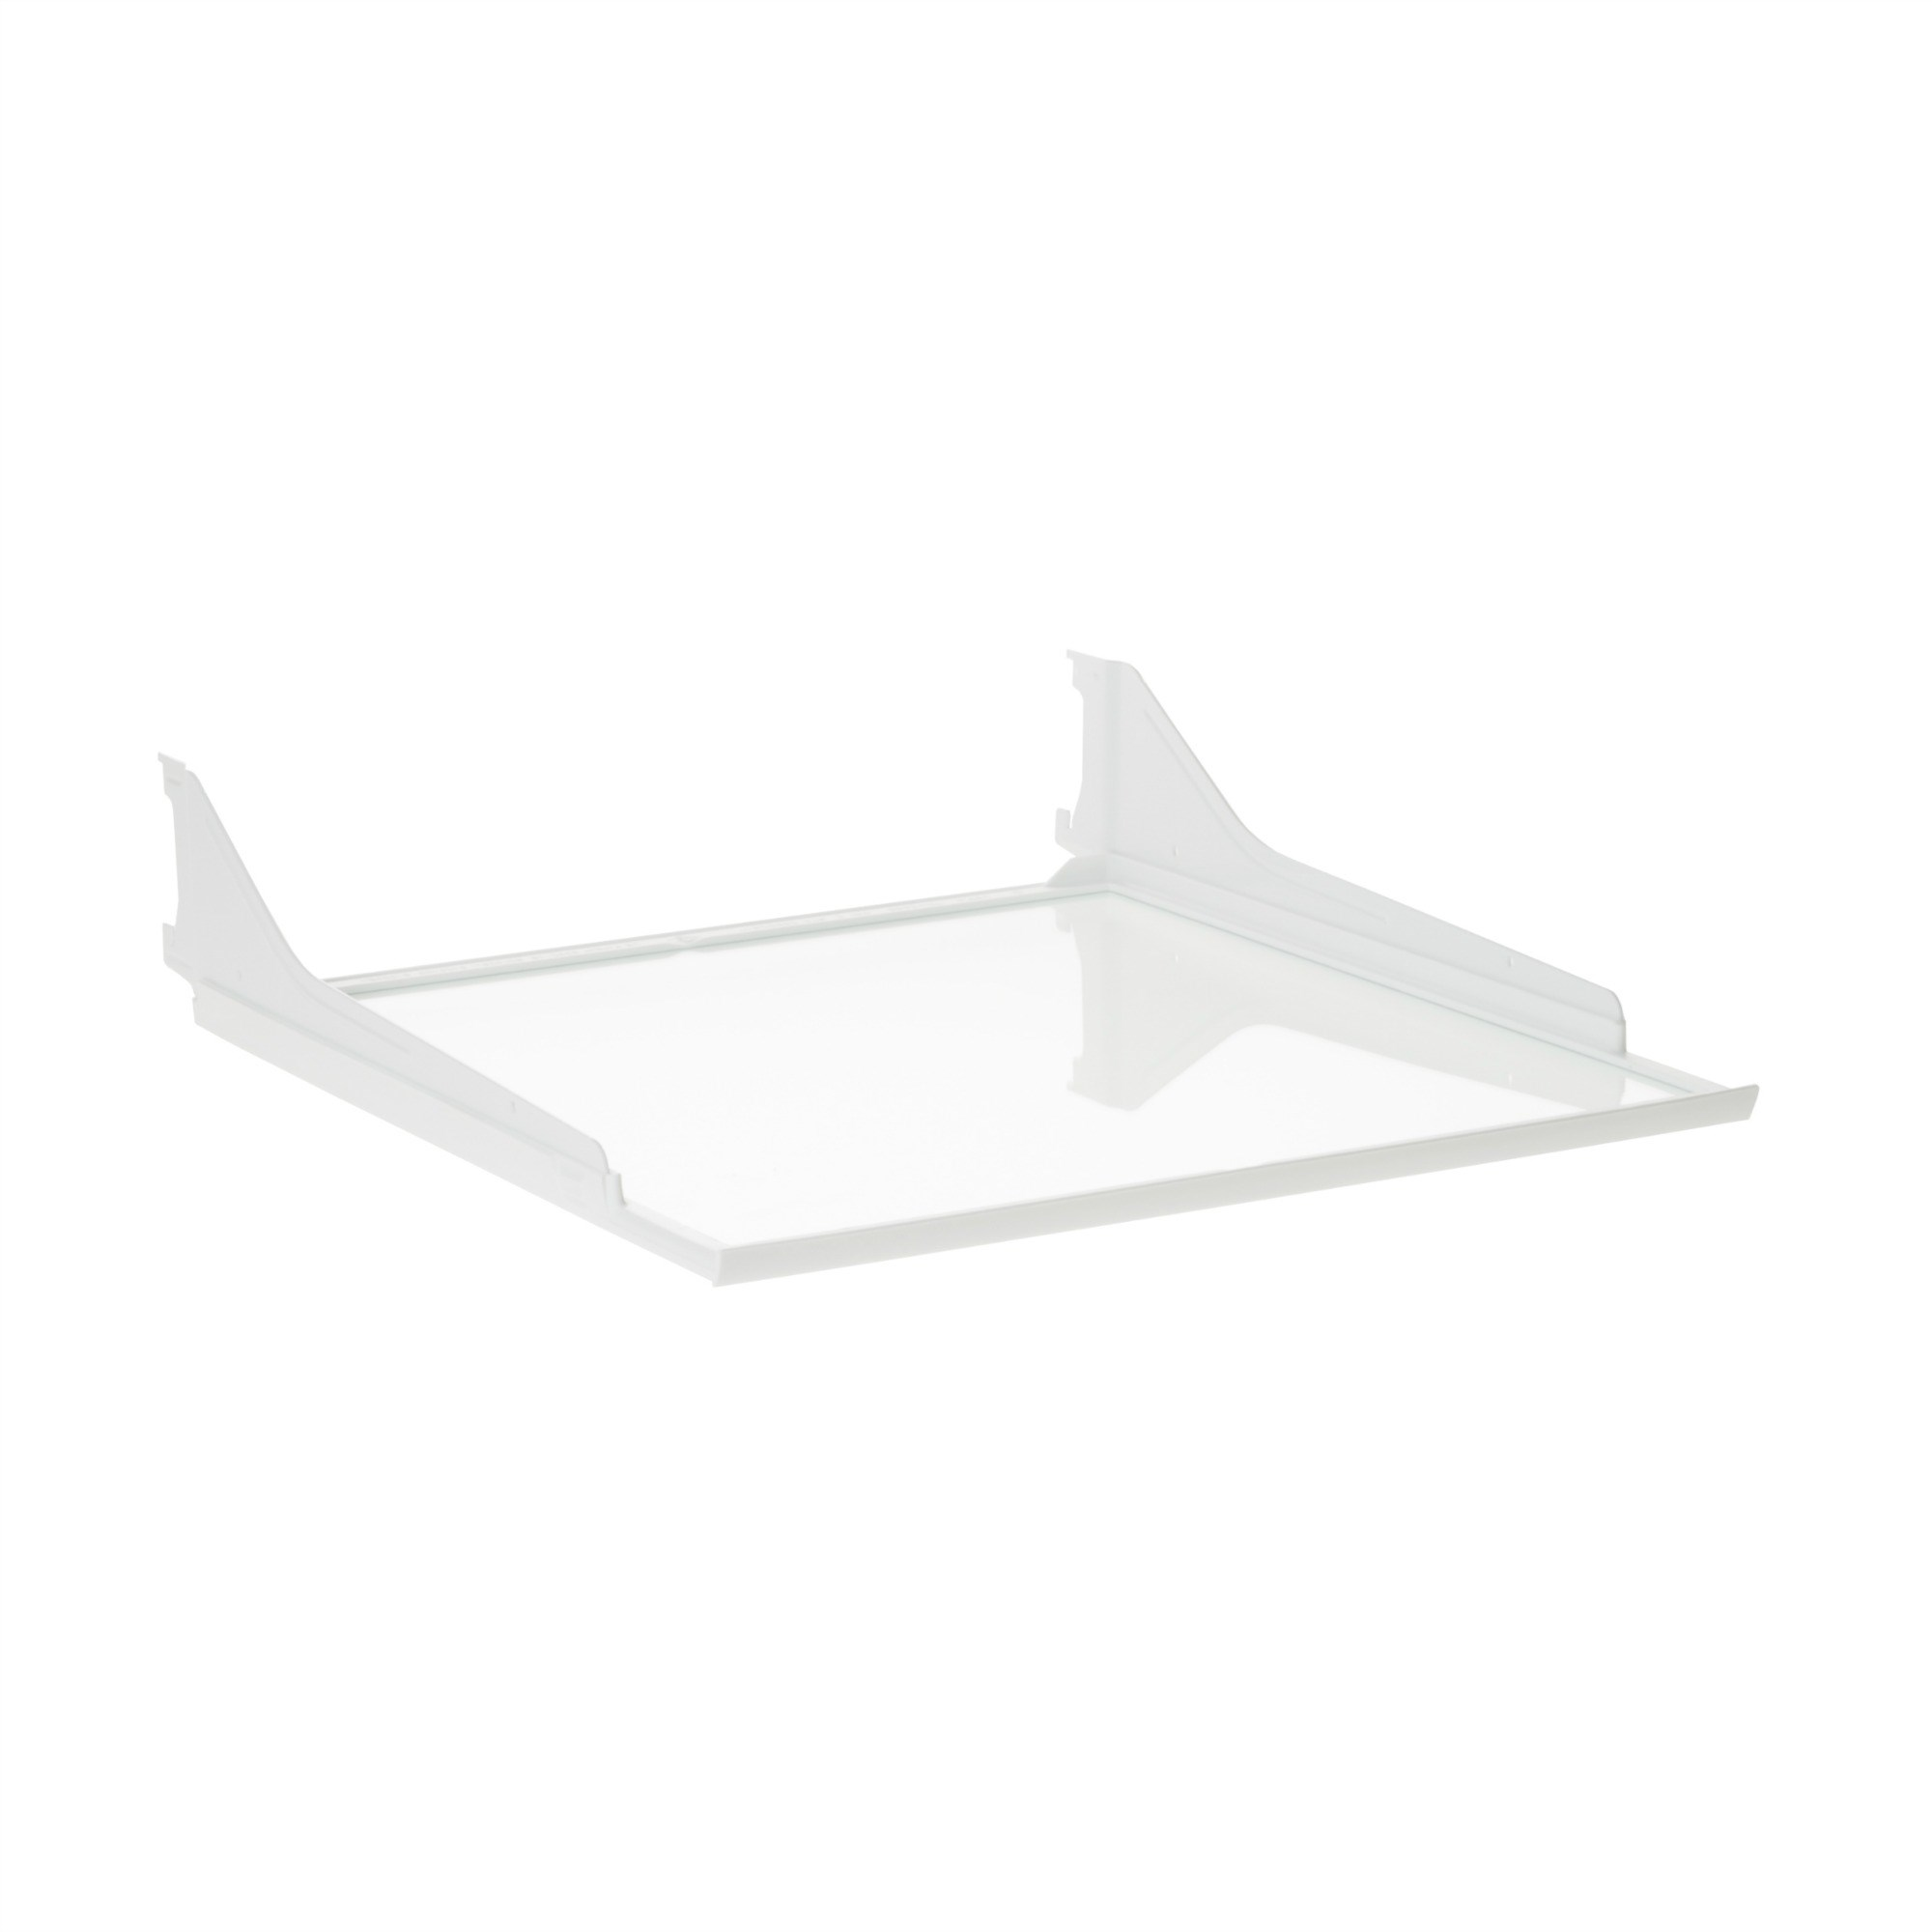 WR32X10887 Genuine OEM GE Shelf Cantilever Asm